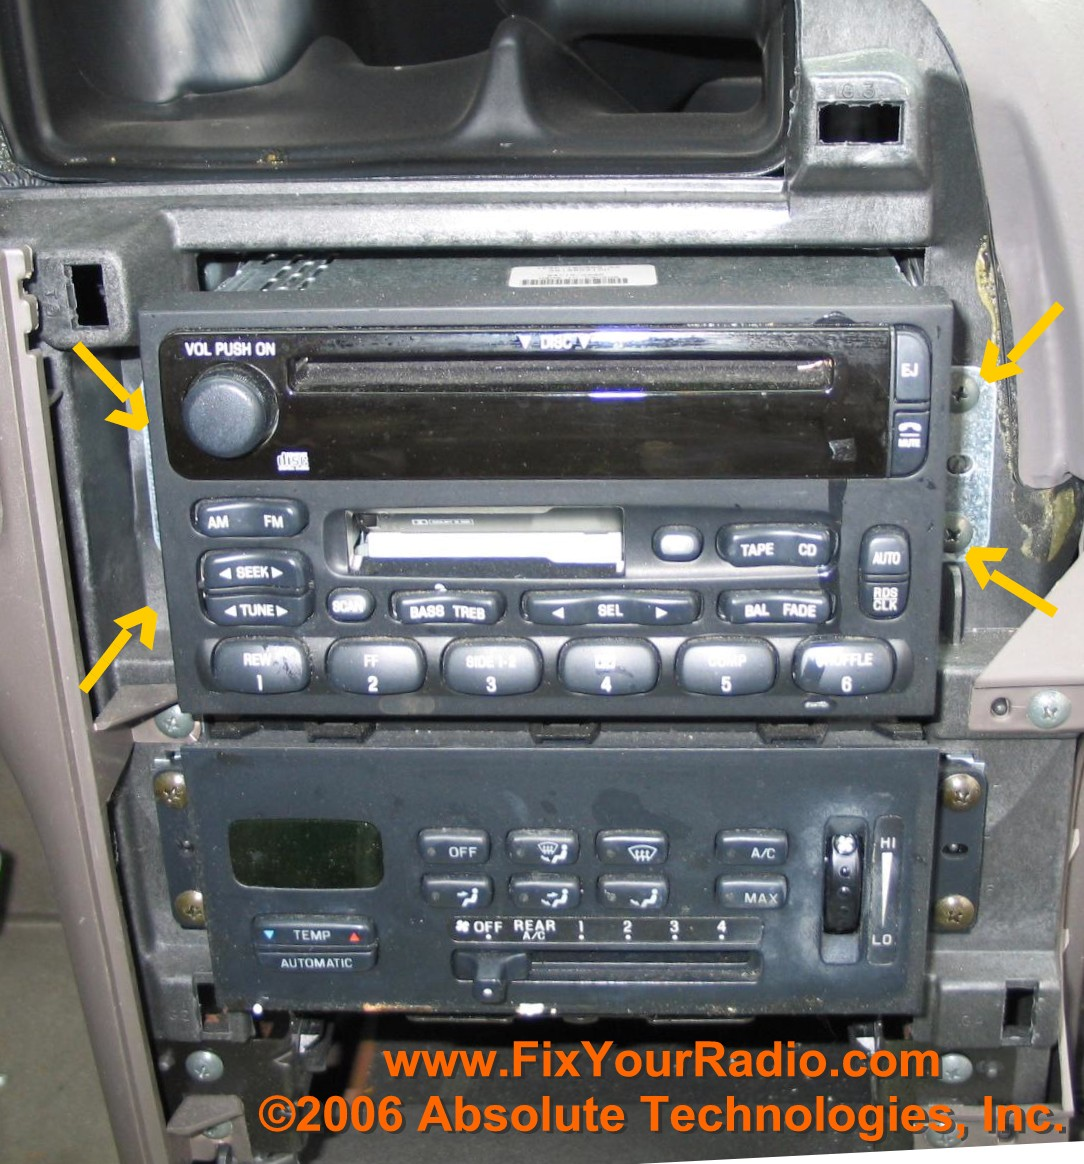 Service manual [Removing Auto Radio 2001 Nissan Maxima] - How To Remove A Nissan Radio Ehow ...